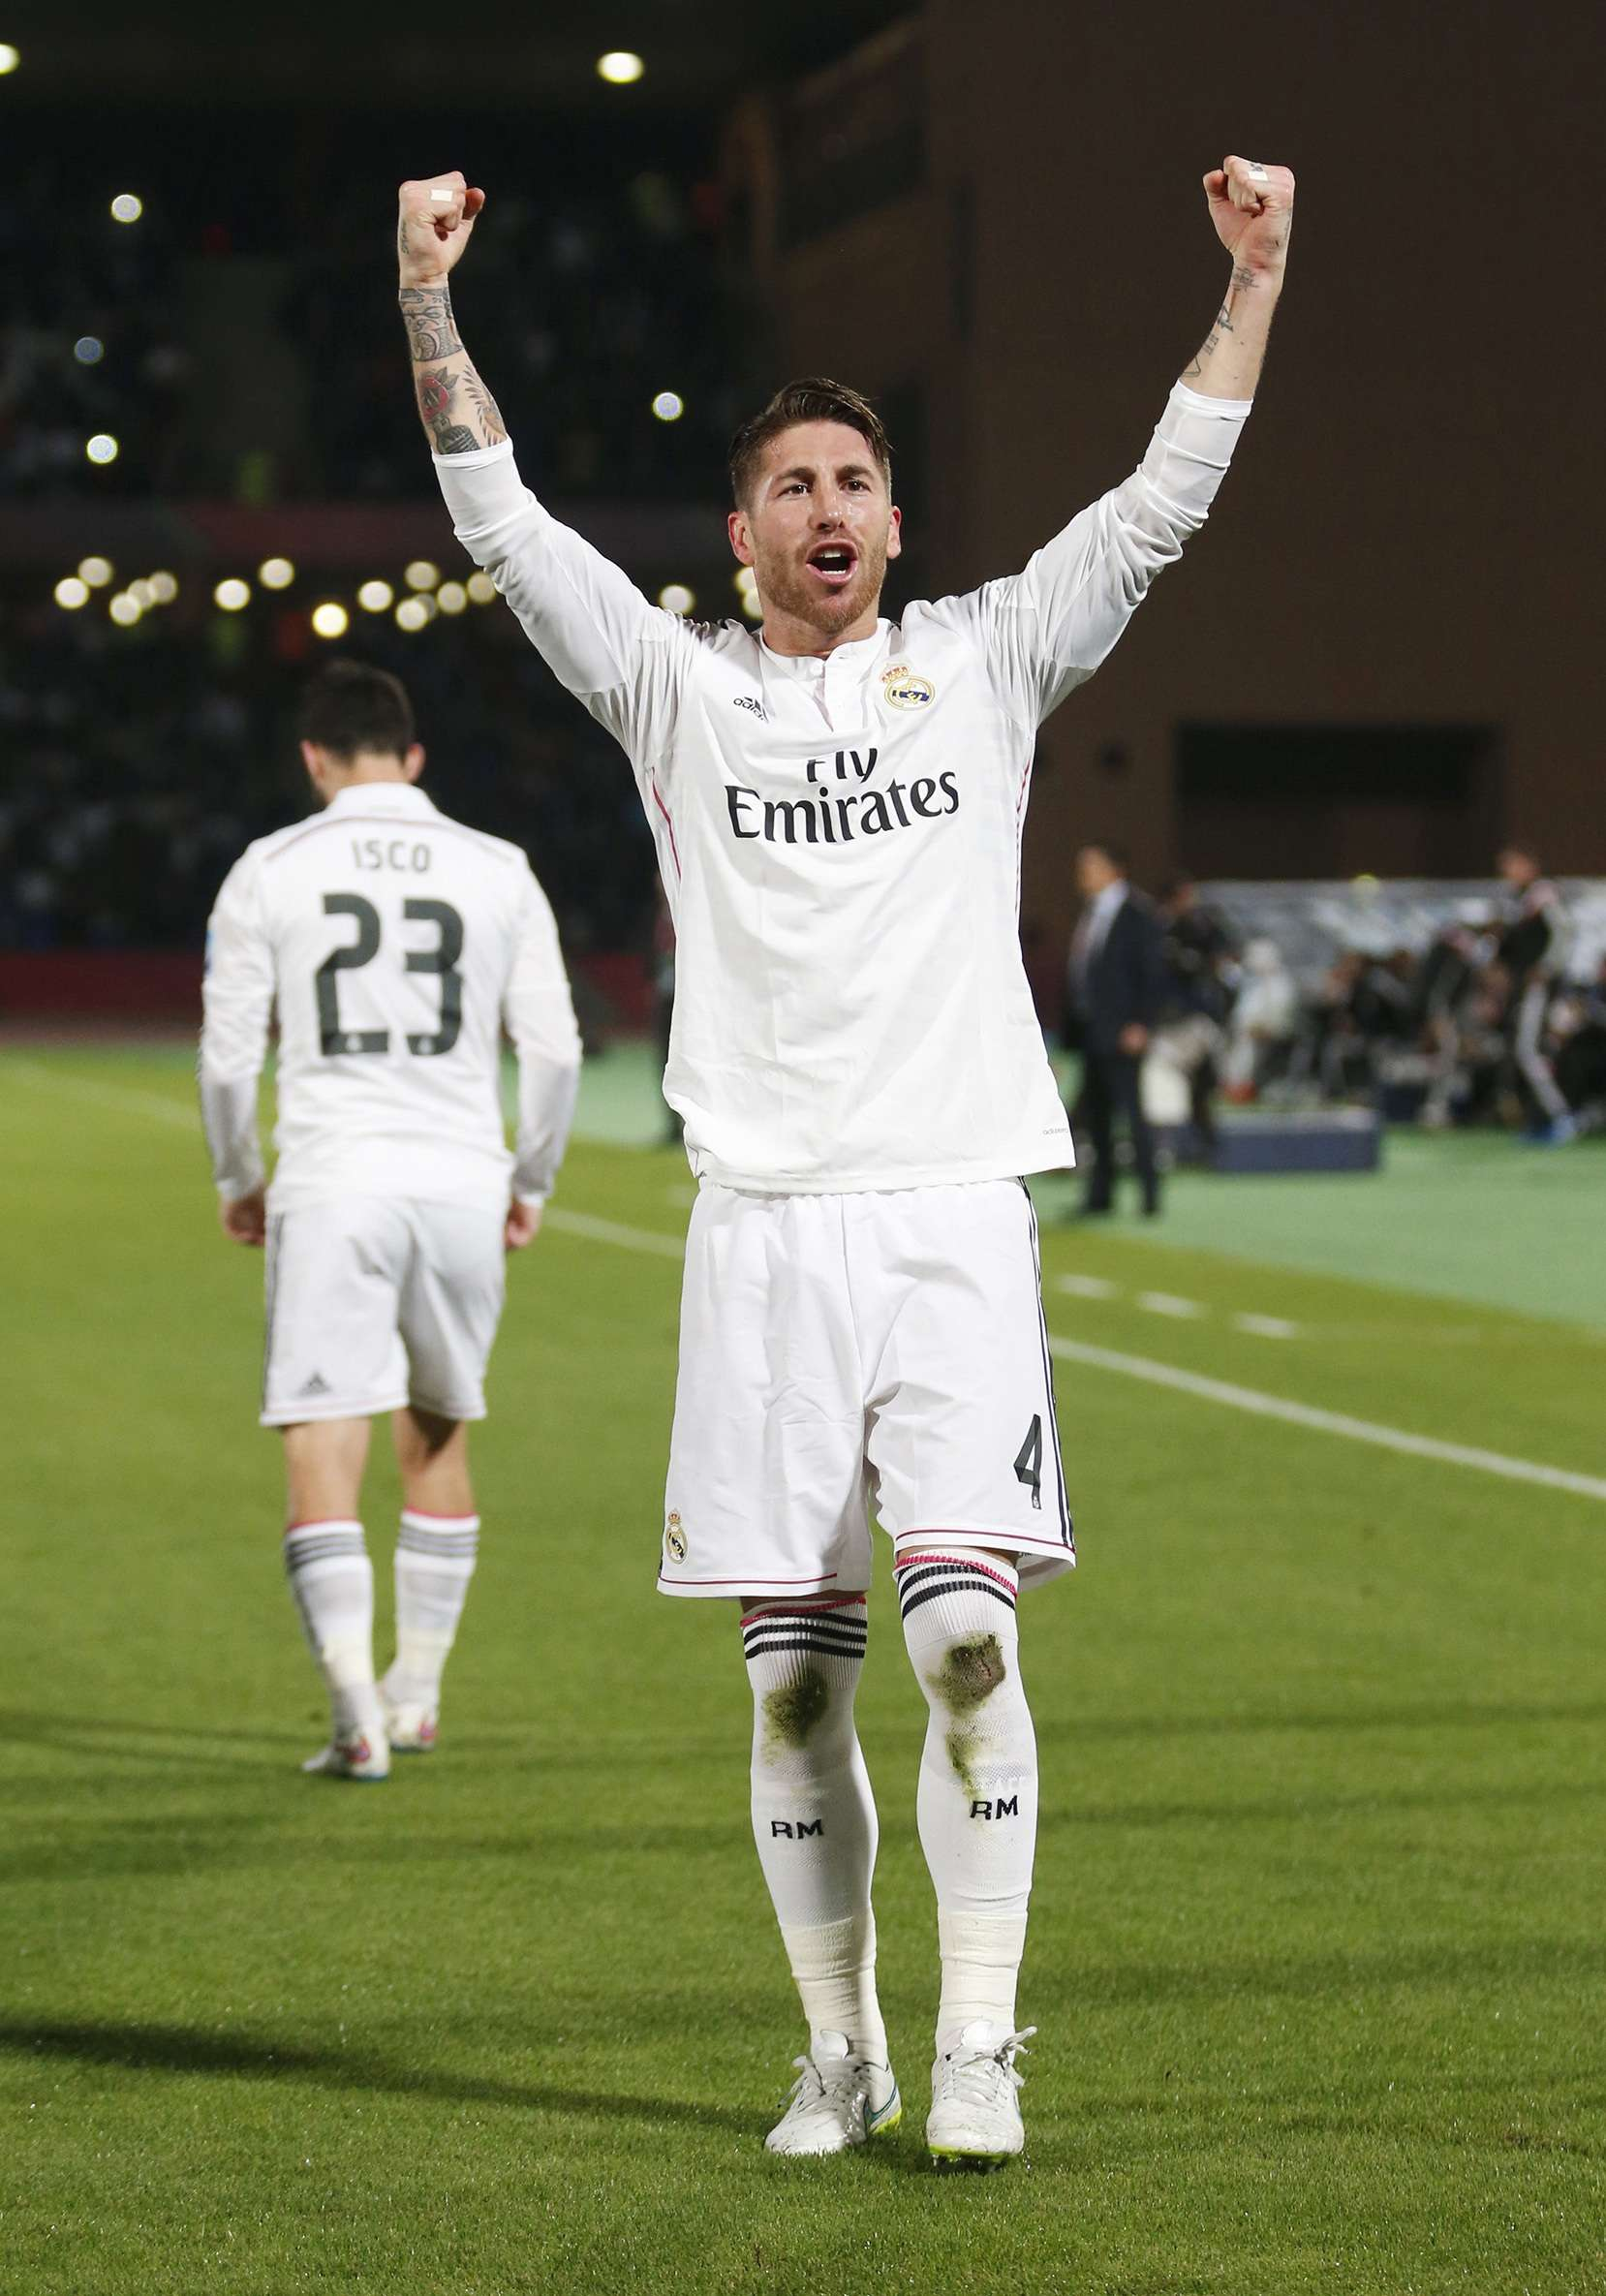 Sergio Ramos of Spain's Real Madrid celebrates after scoring against Mexico's Cruz Azul during their semi-final soccer match in FIFA Club World Cup at Marrakech stadium December 16, 2014. REUTERS/Youssef Boudlal (MOROCCO - Tags: SPORT SOCCER) Foto: YOUSSEF BOUDLAL/REUTERS